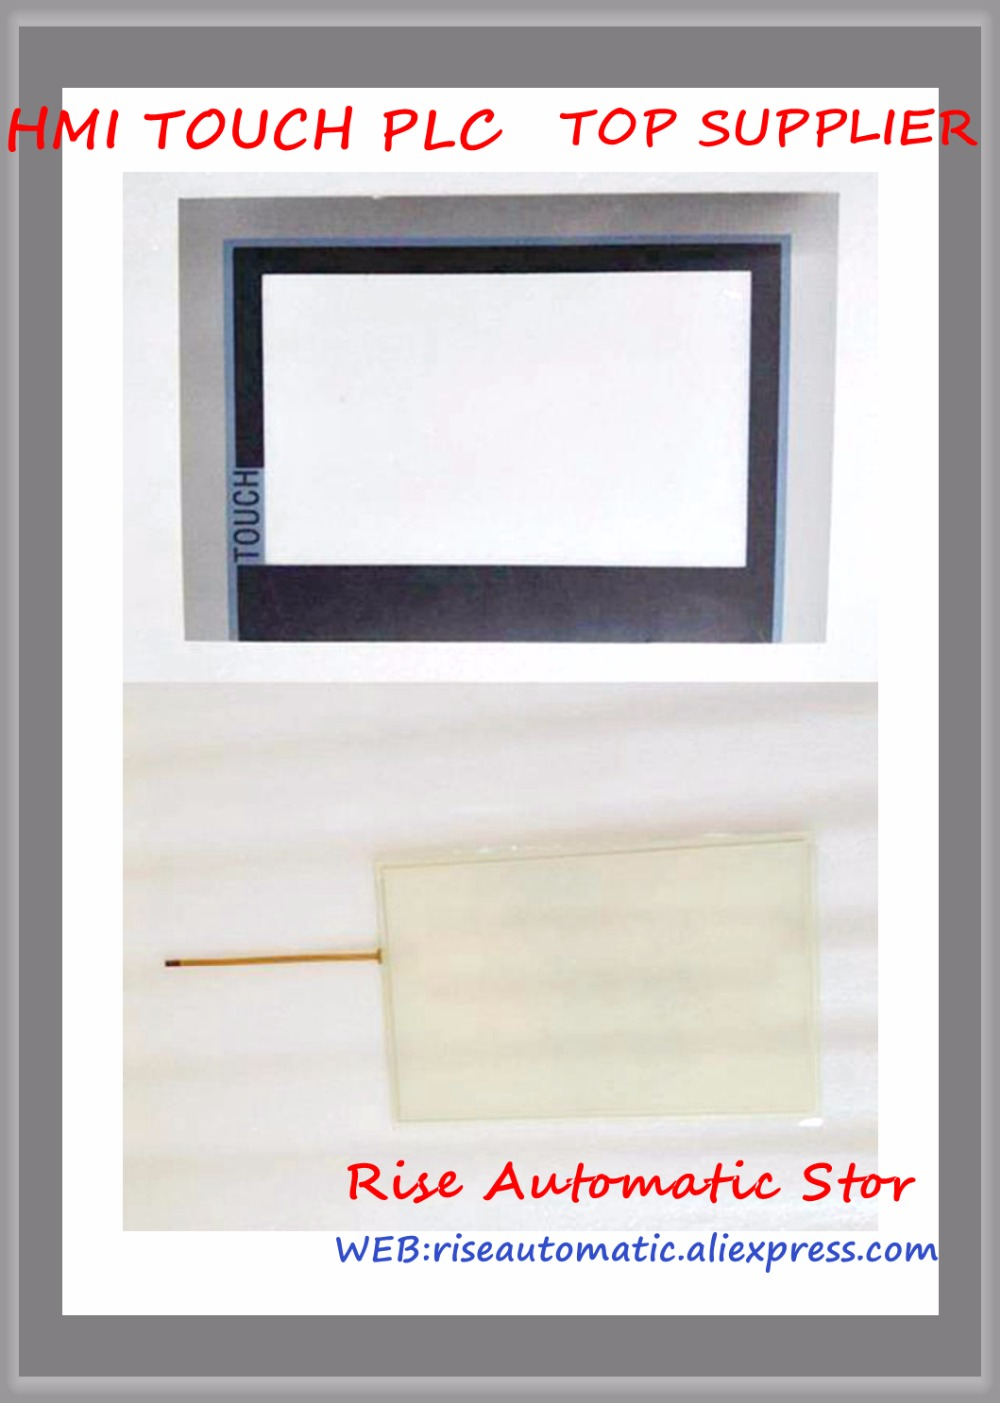 New Touch Glass+ Protective film 6AV2124-0MC01-0AX0 for HMI TP1200 12 touch panel 6AV2 124-0MC01-0AX0 6AV21240MC010AX0 5 7 inch touch for 6av6 640 0da11 0ax0 k tp178 touch screen panel glass